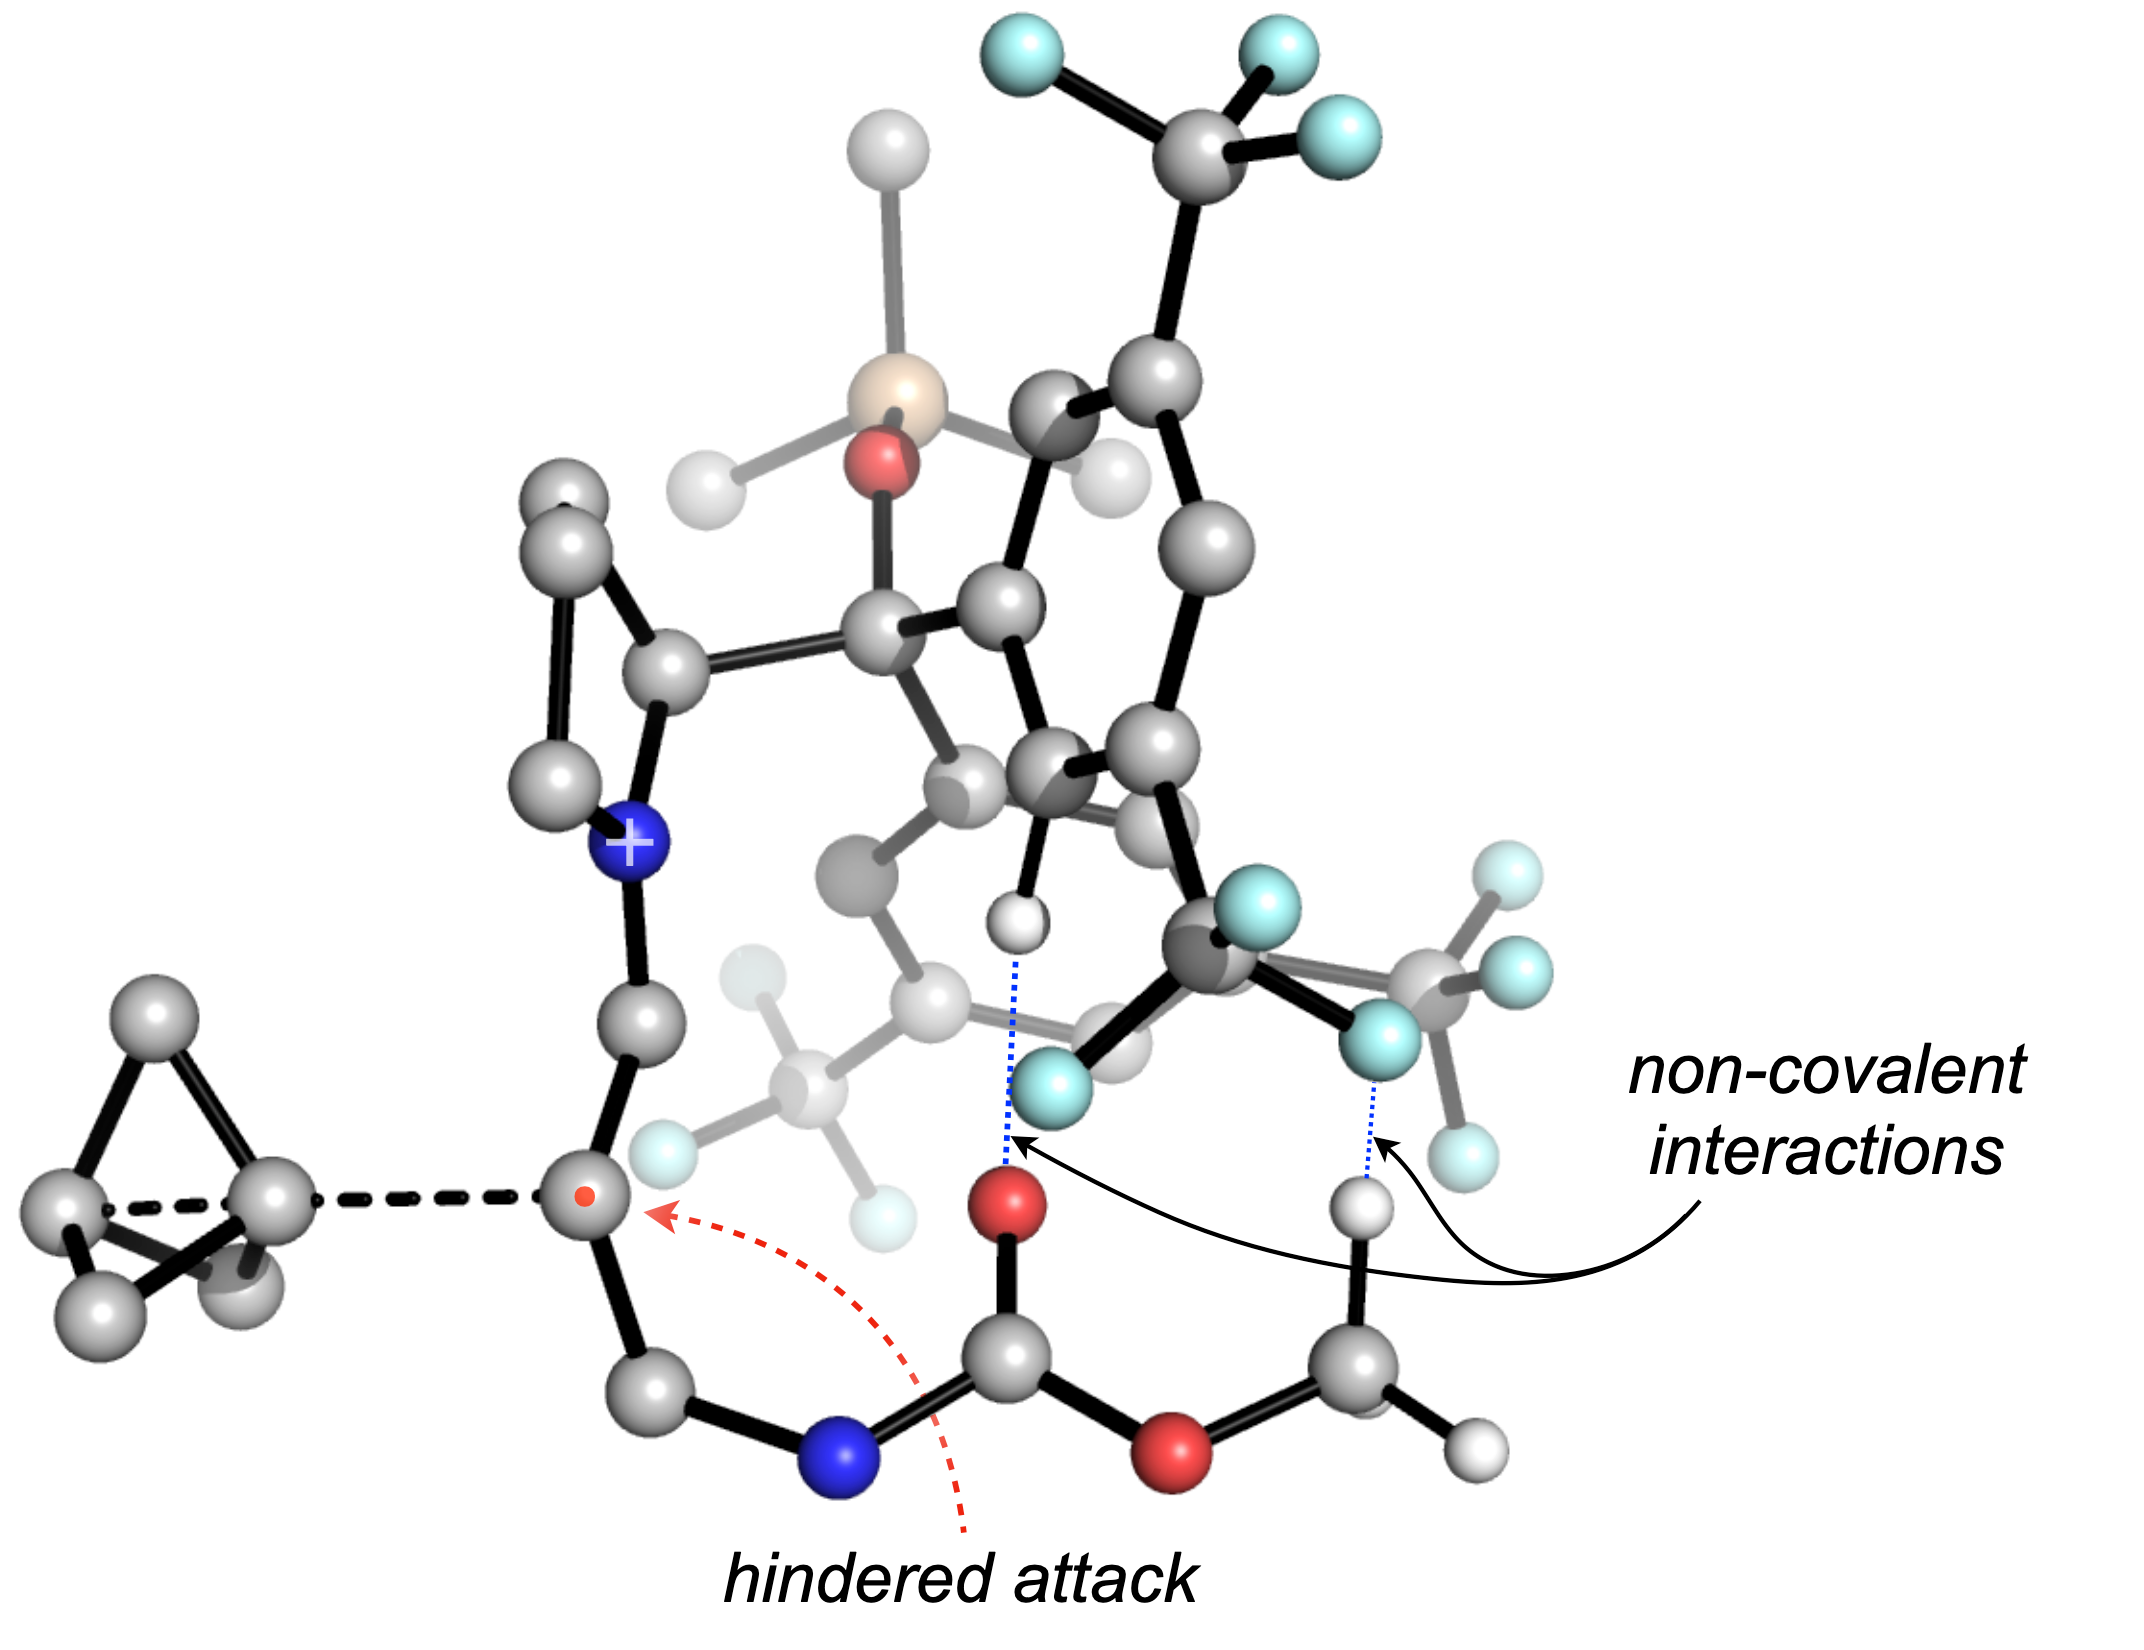 We used DFT to develop a selectivity model, which showed us the importance of non-covalent interactions on the attack trajectory.